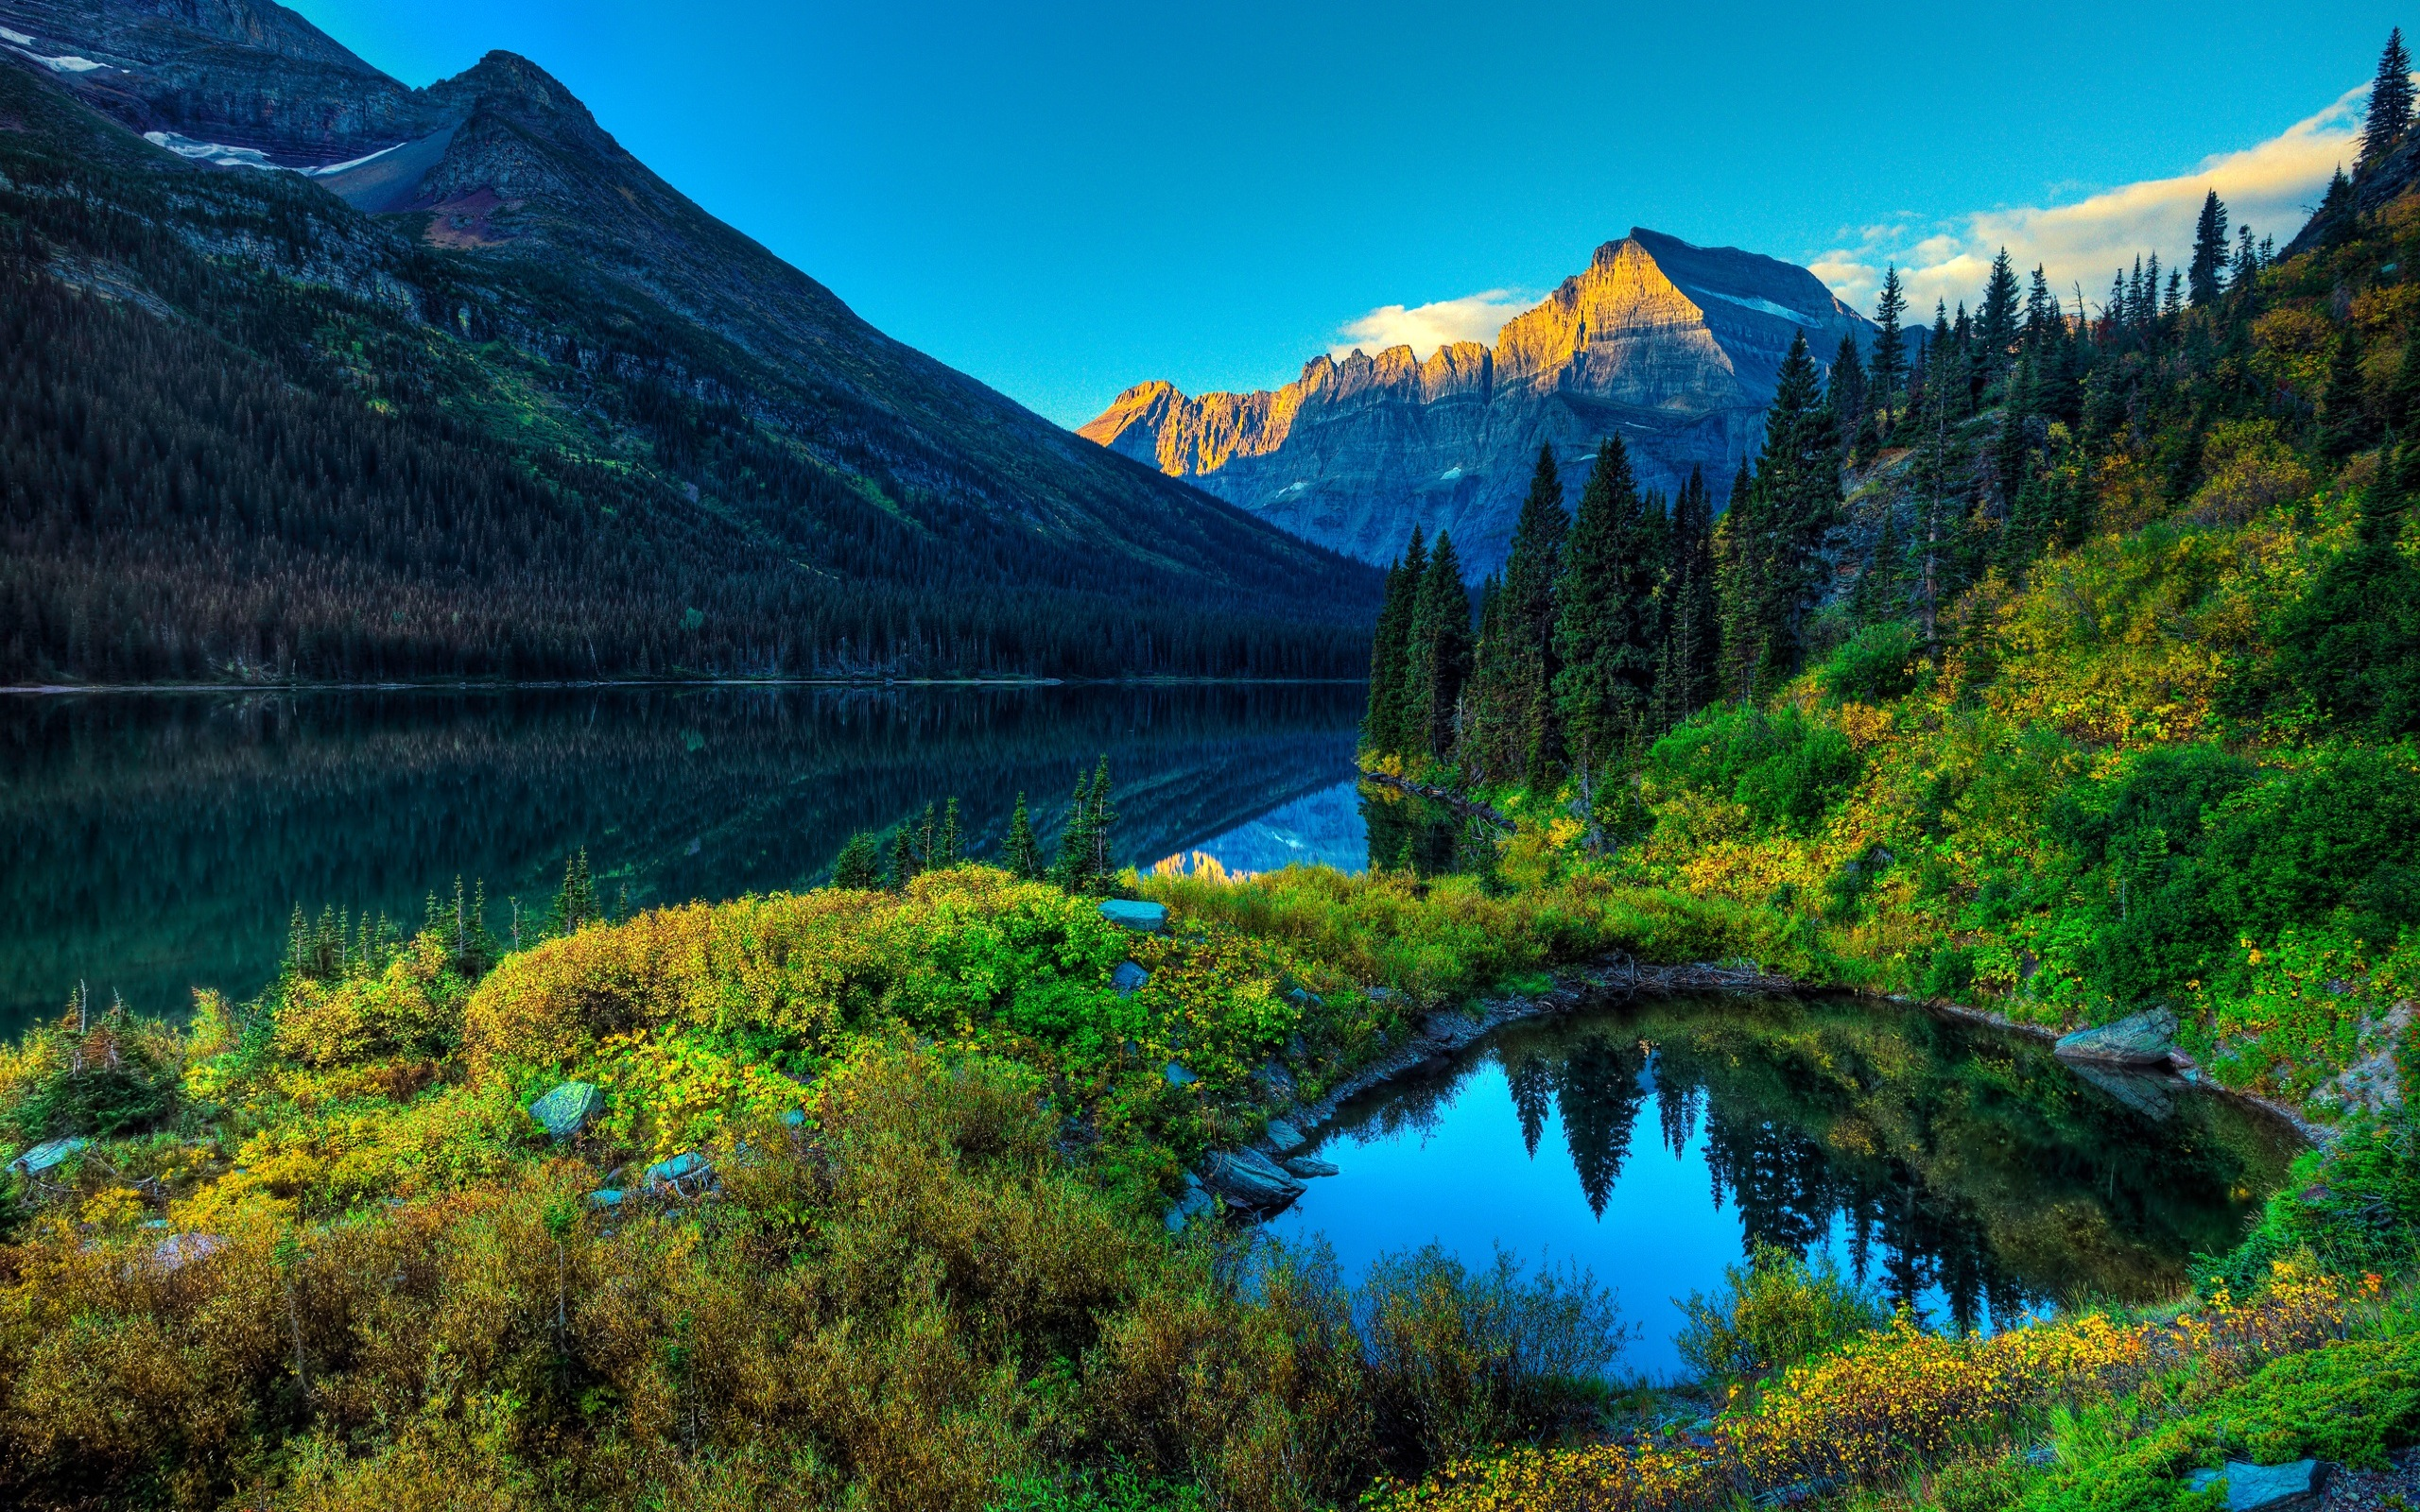 Lake Mountain Scenery Wallpapers HD Wallpapers 2560x1600